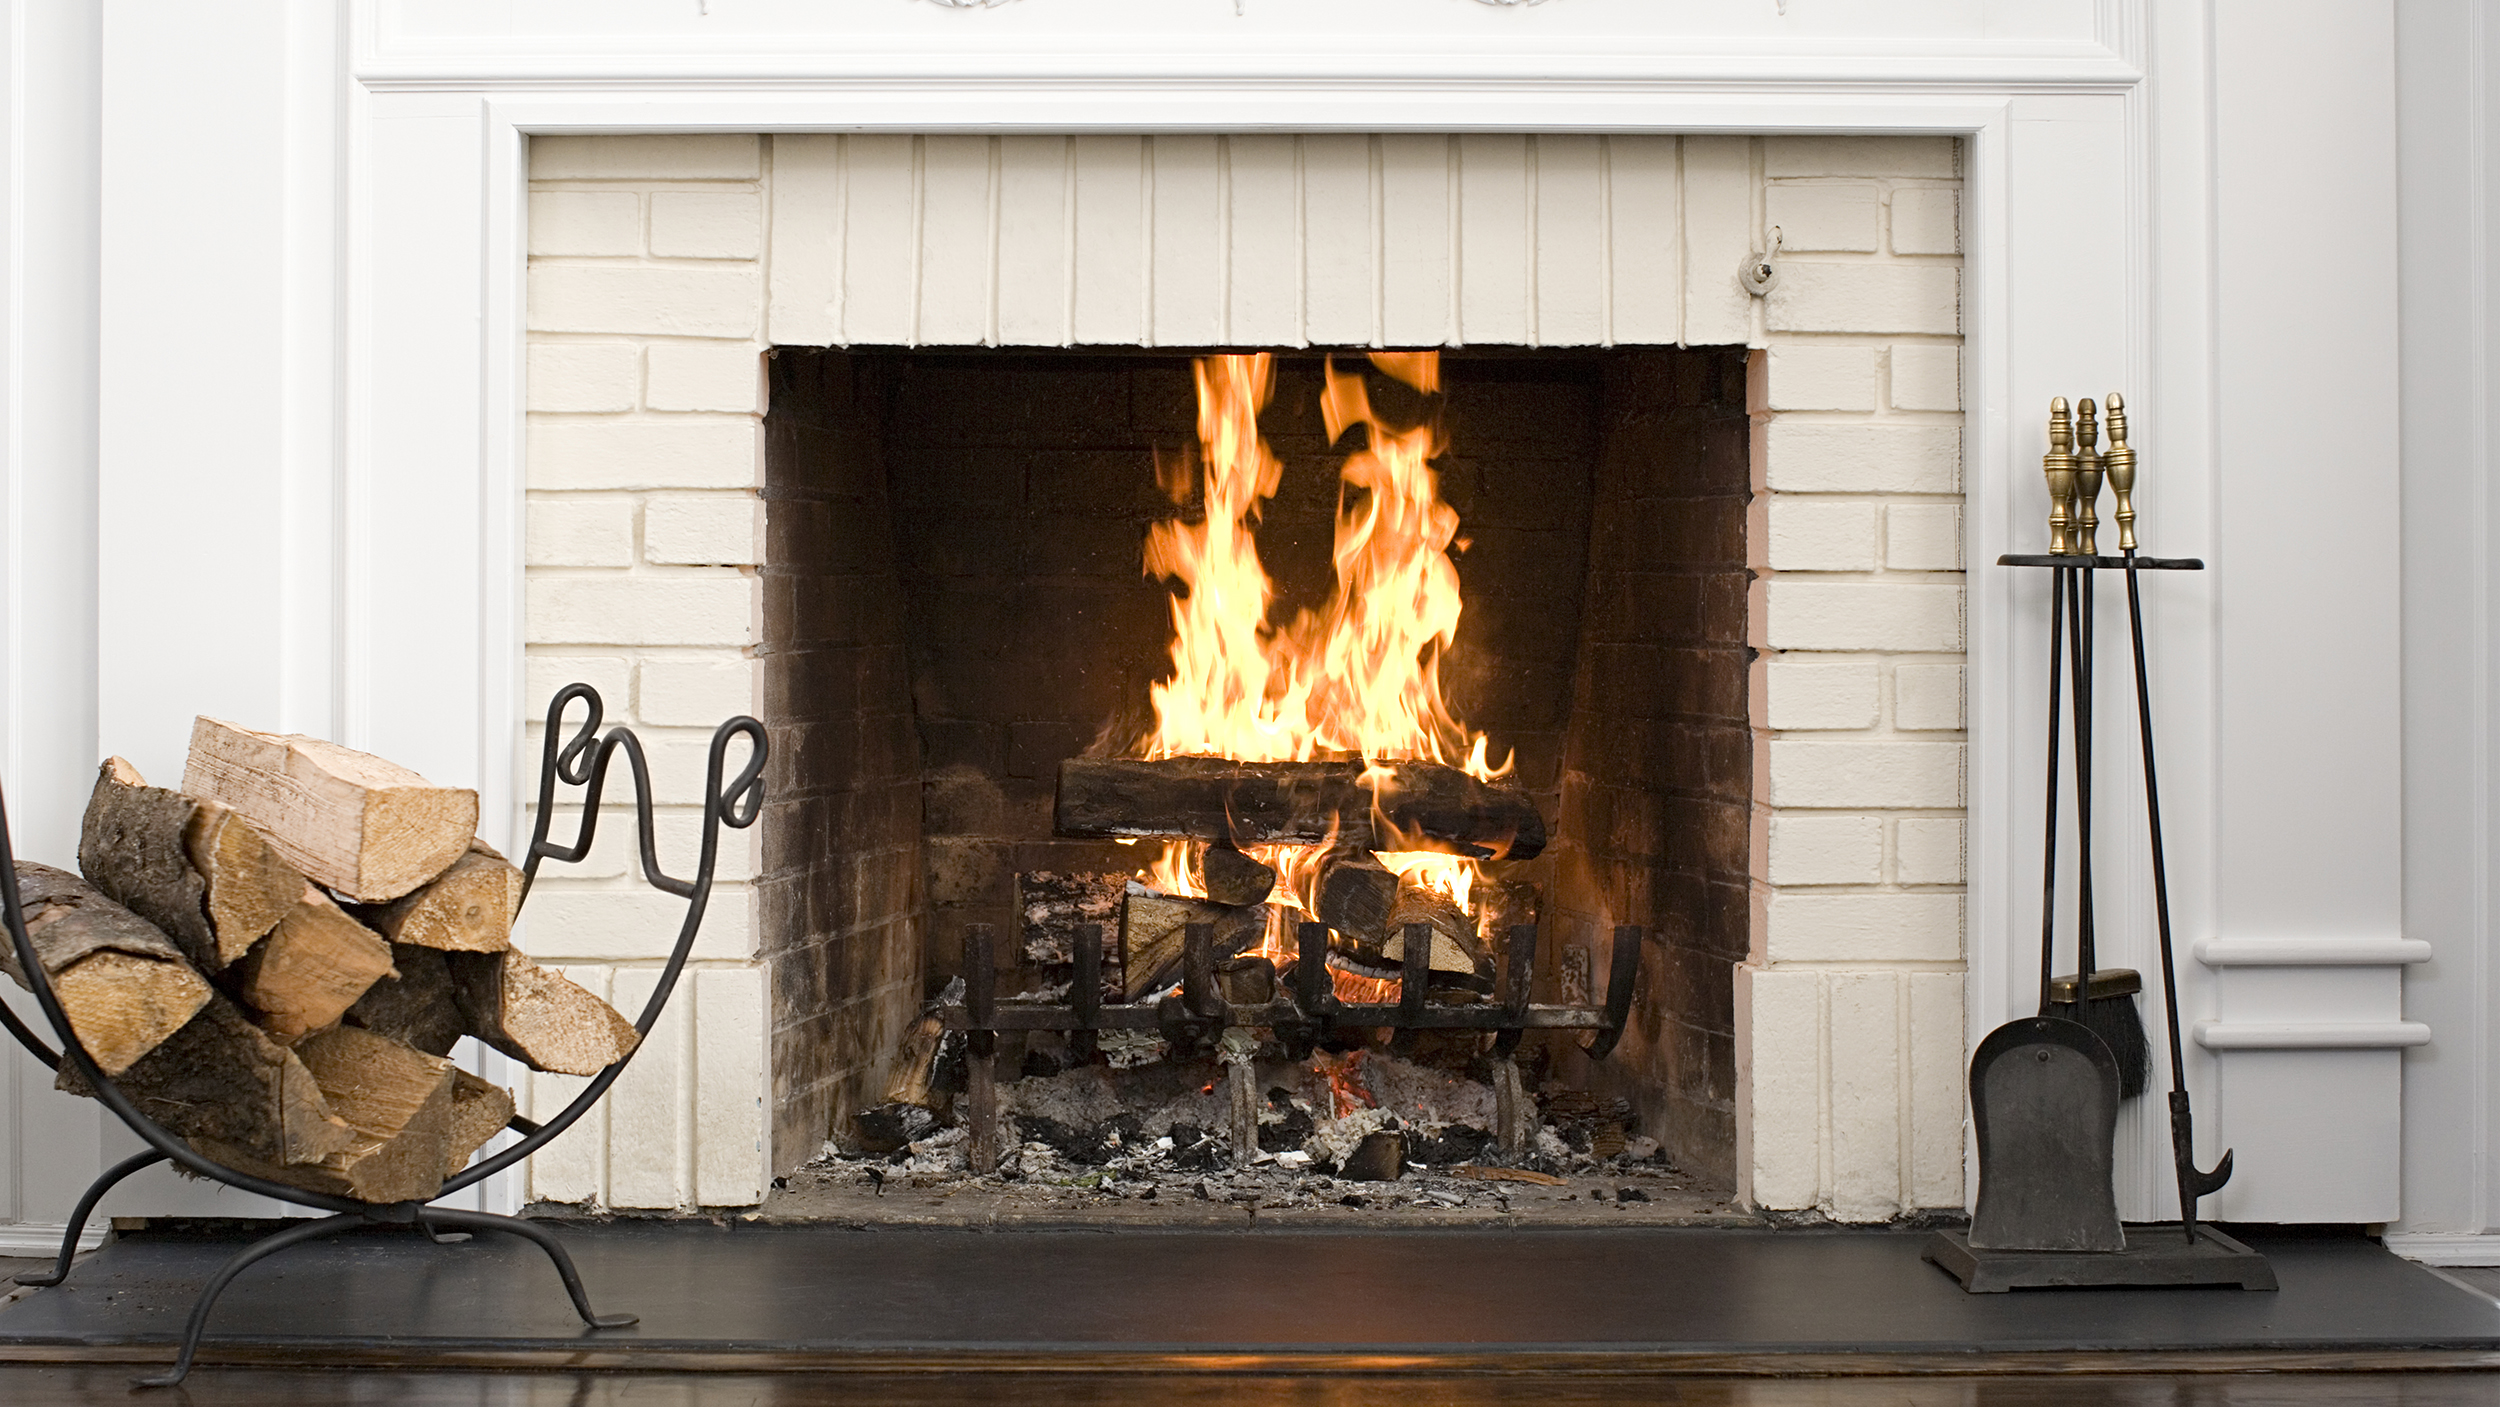 Everything you need to know about chimney and fireplace cleaning